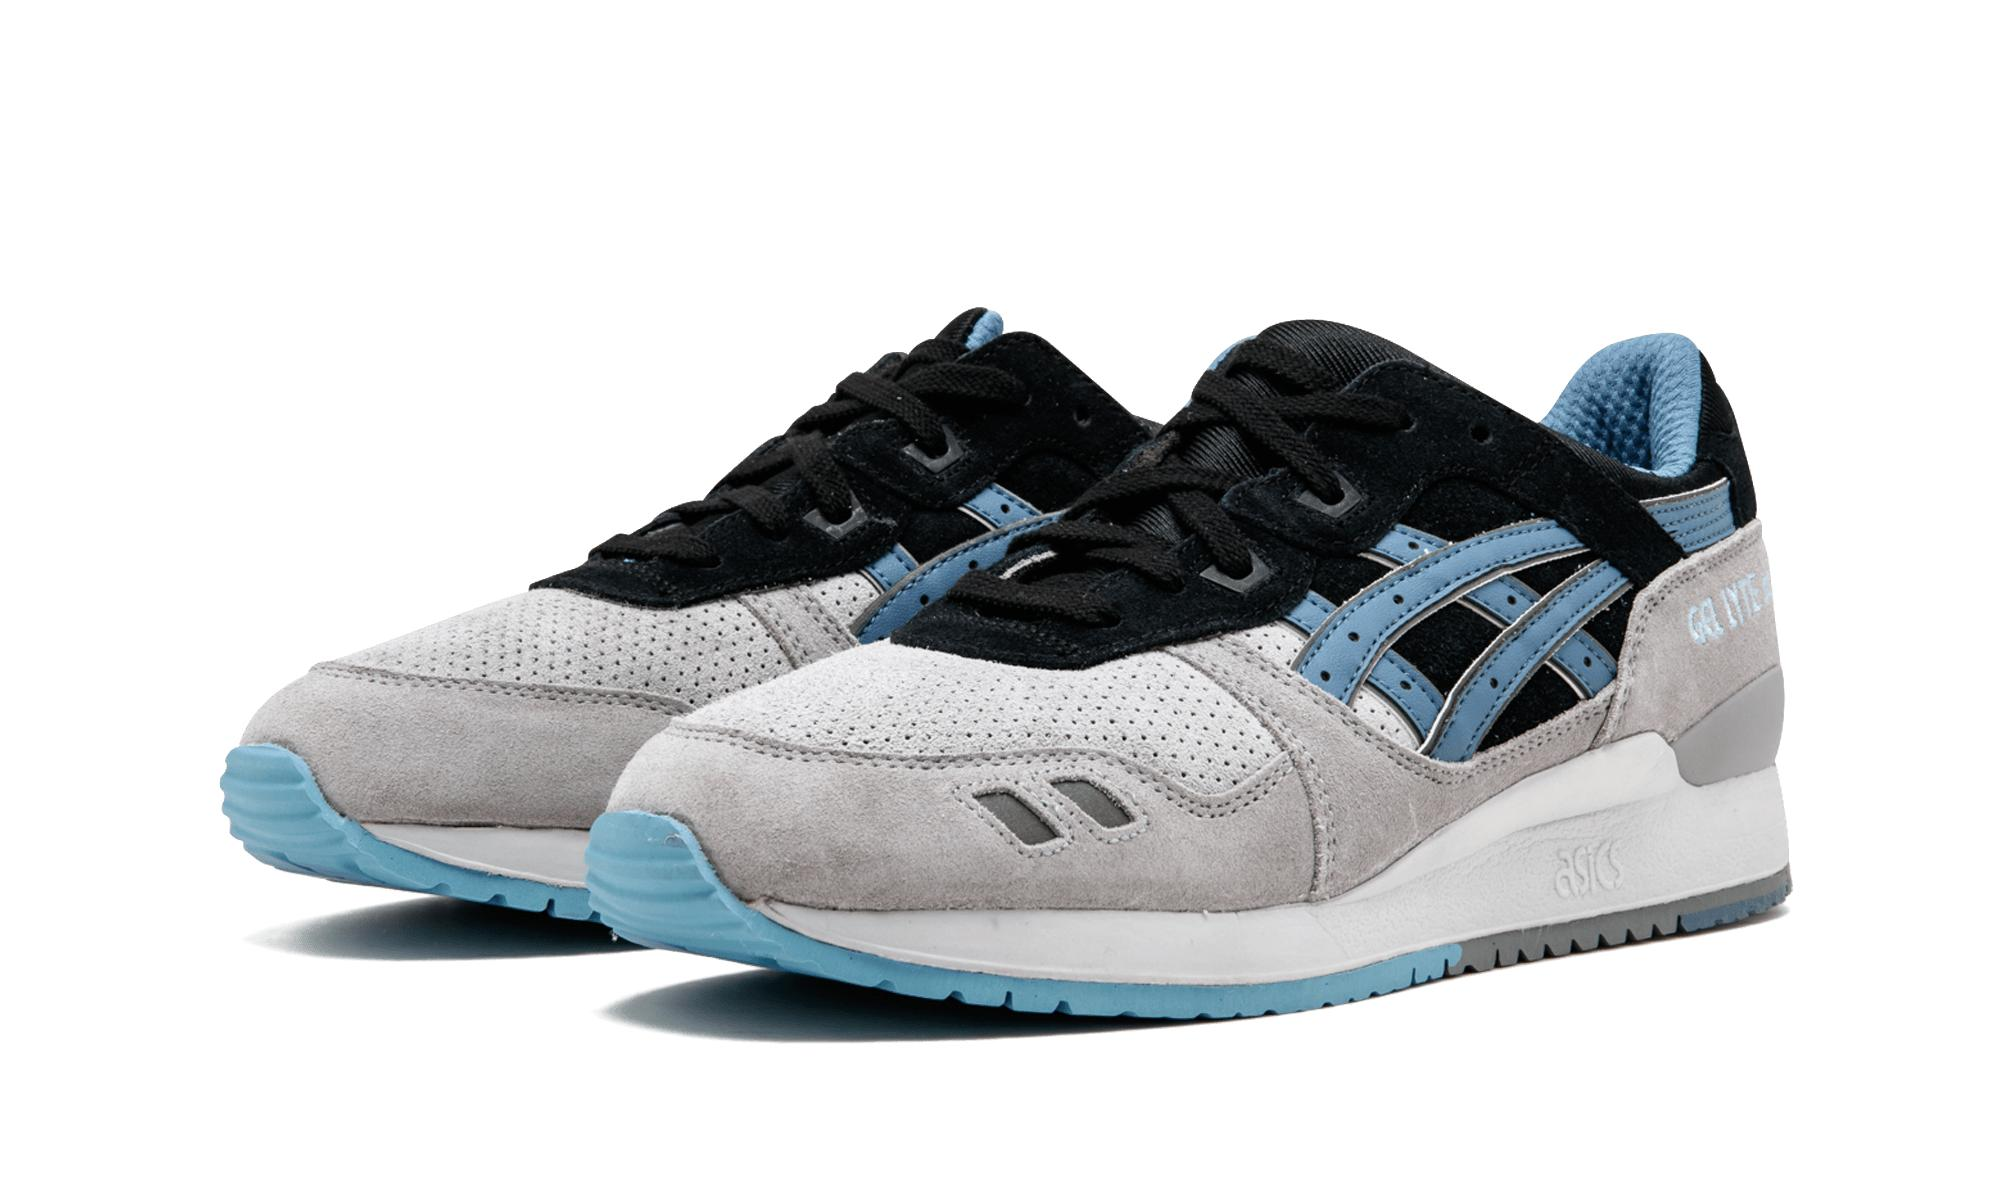 9c825cd4 Asics - Blue Gel-lyte Iii for Men - Lyst. View fullscreen